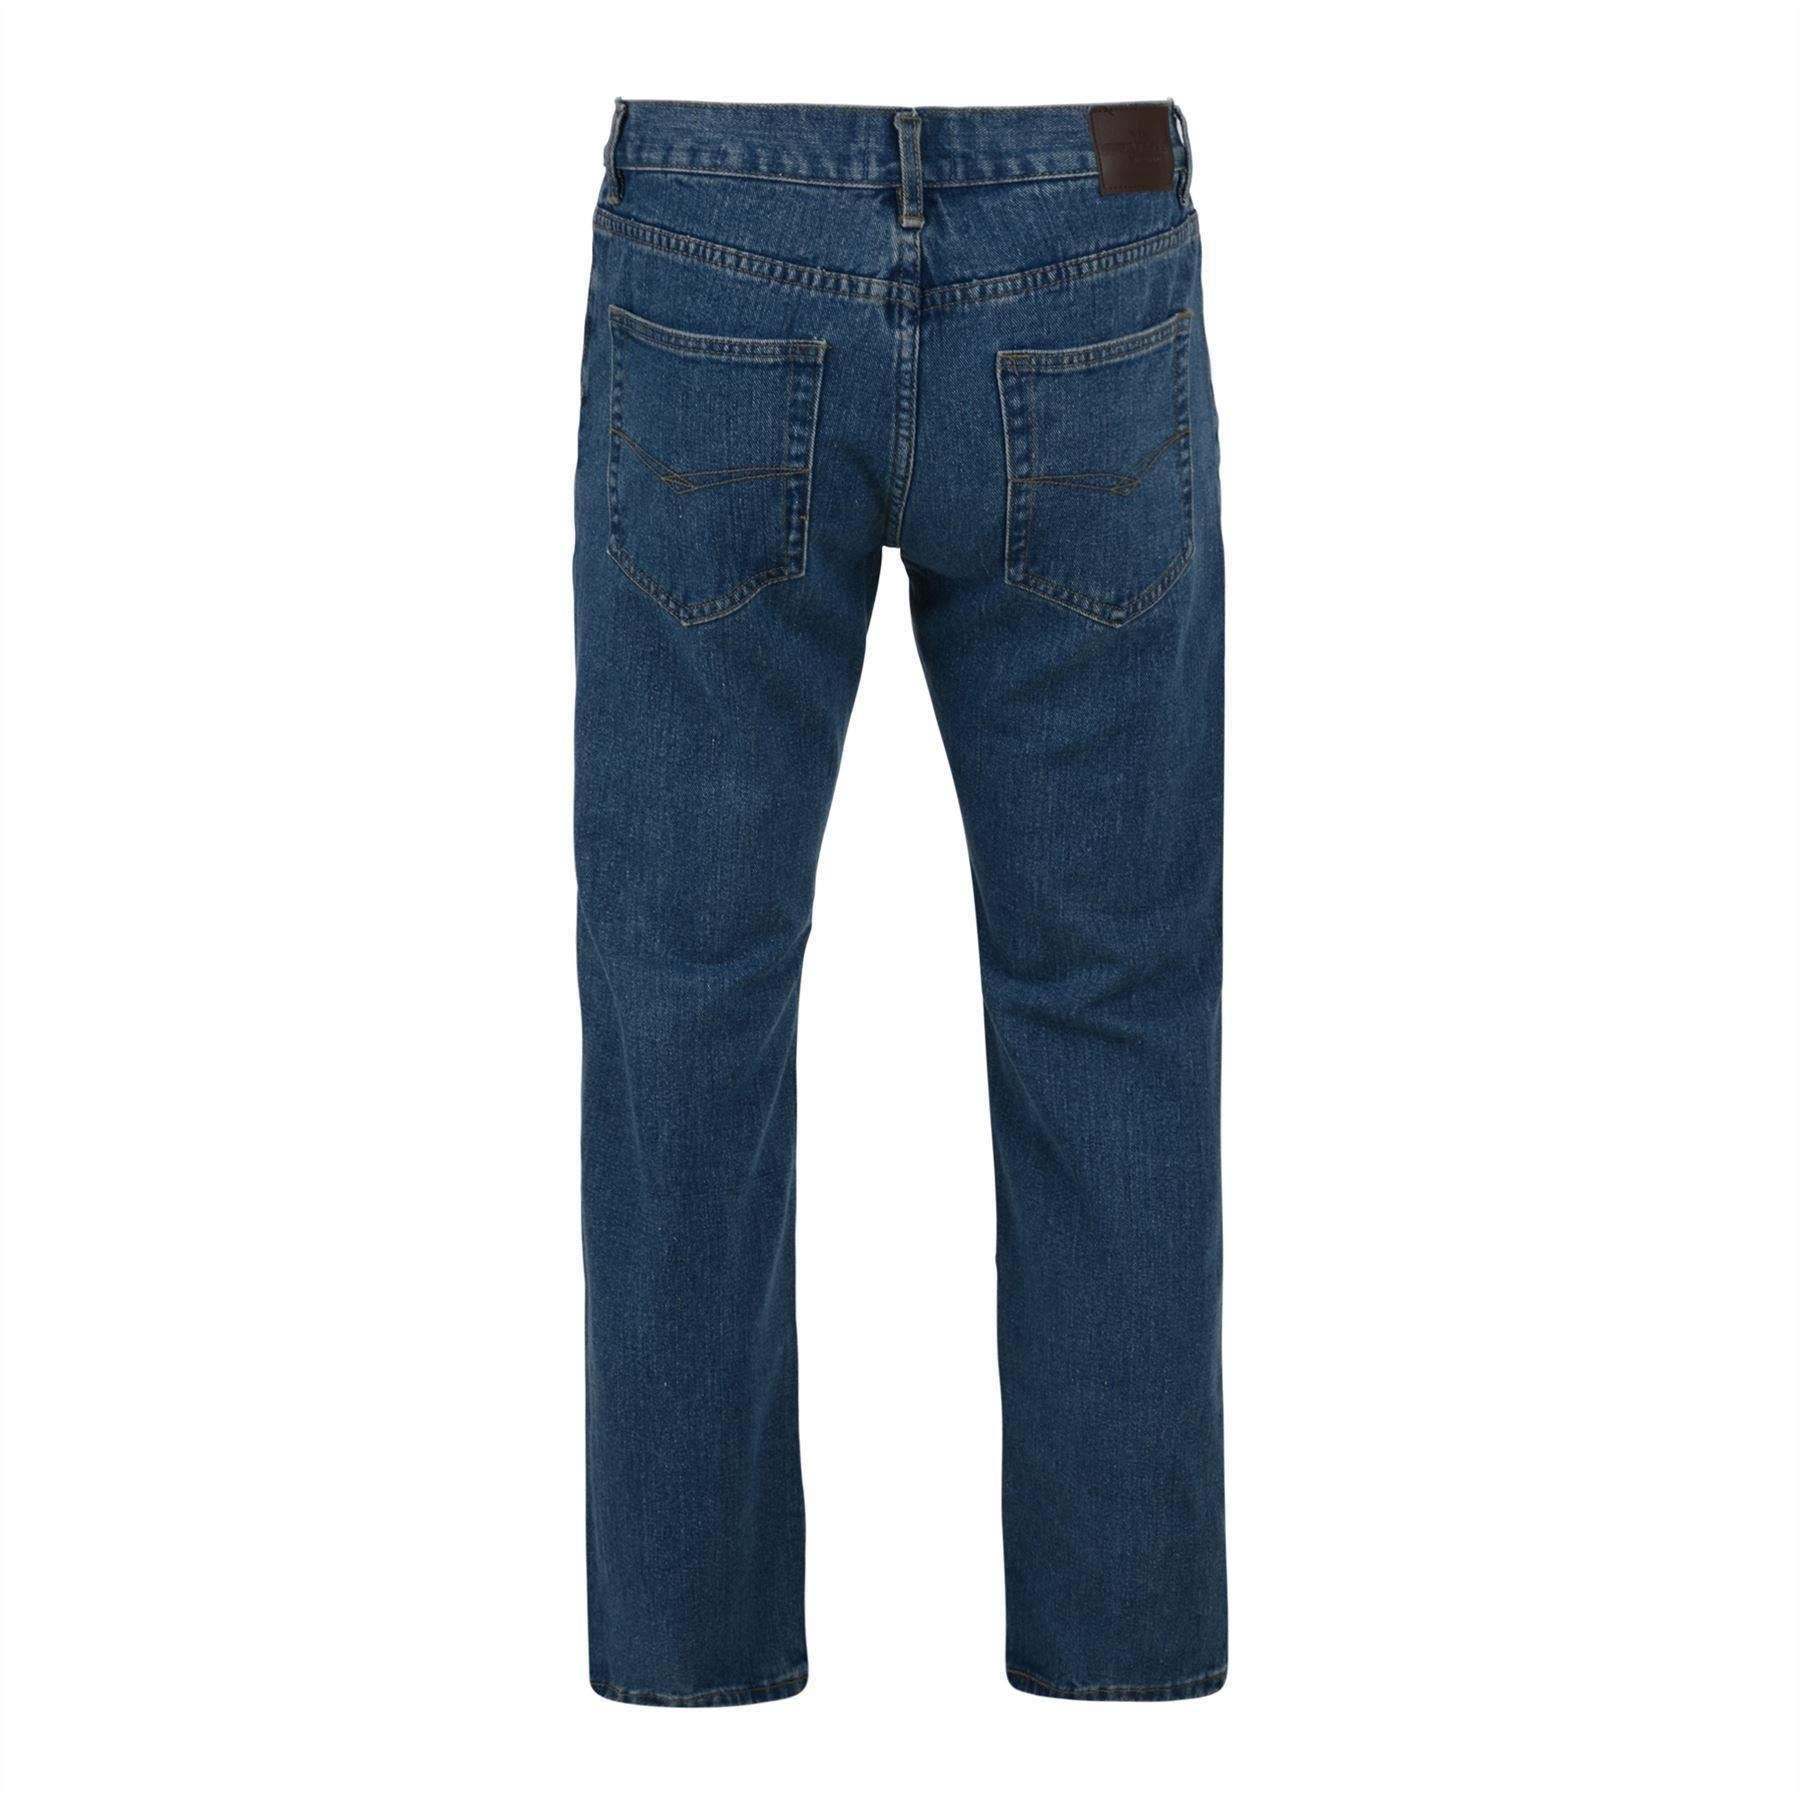 Find great deals on eBay for mens jeans 44 waist. Shop with confidence.